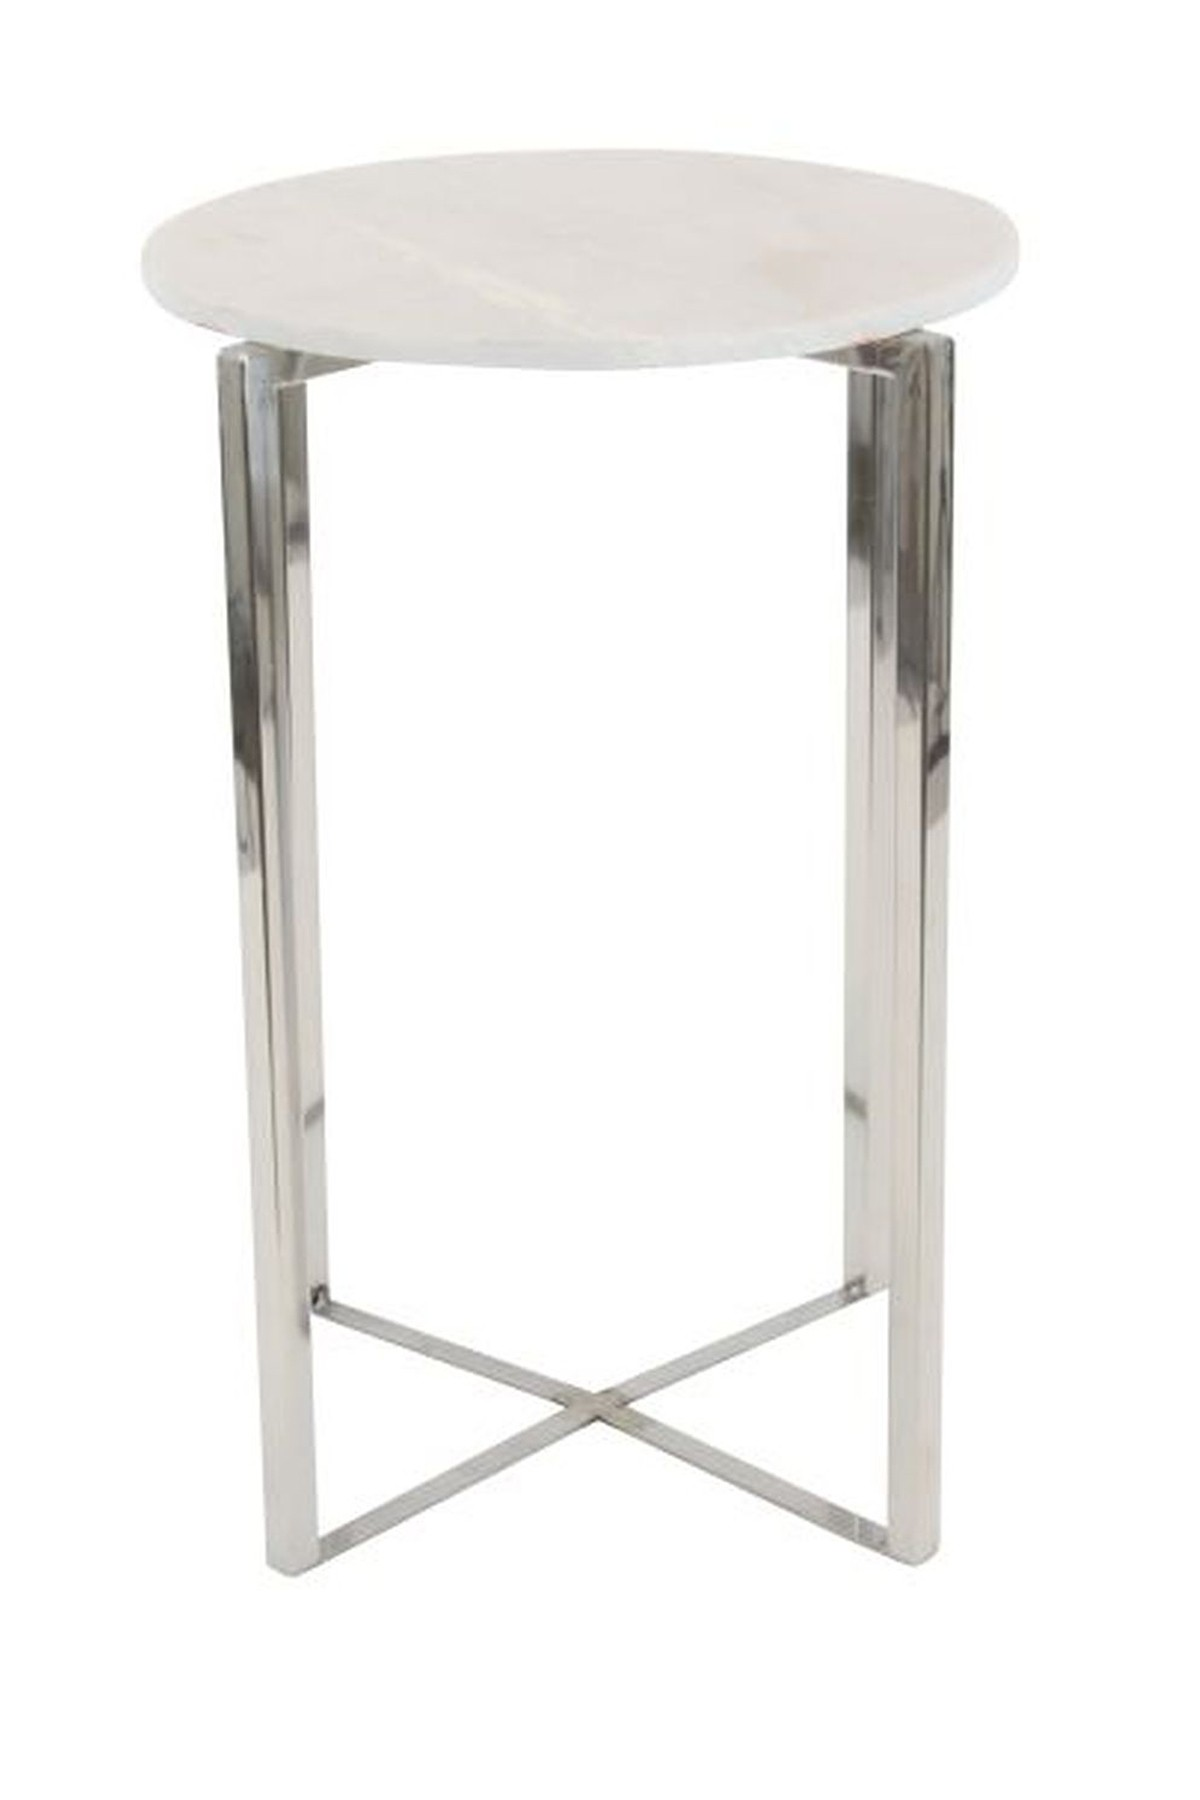 uma white silver stainless steel marble accent table nordstrom off antique french side under cabinet lighting black and dining set foot sofa sauder milled cherry end lamp kitchen